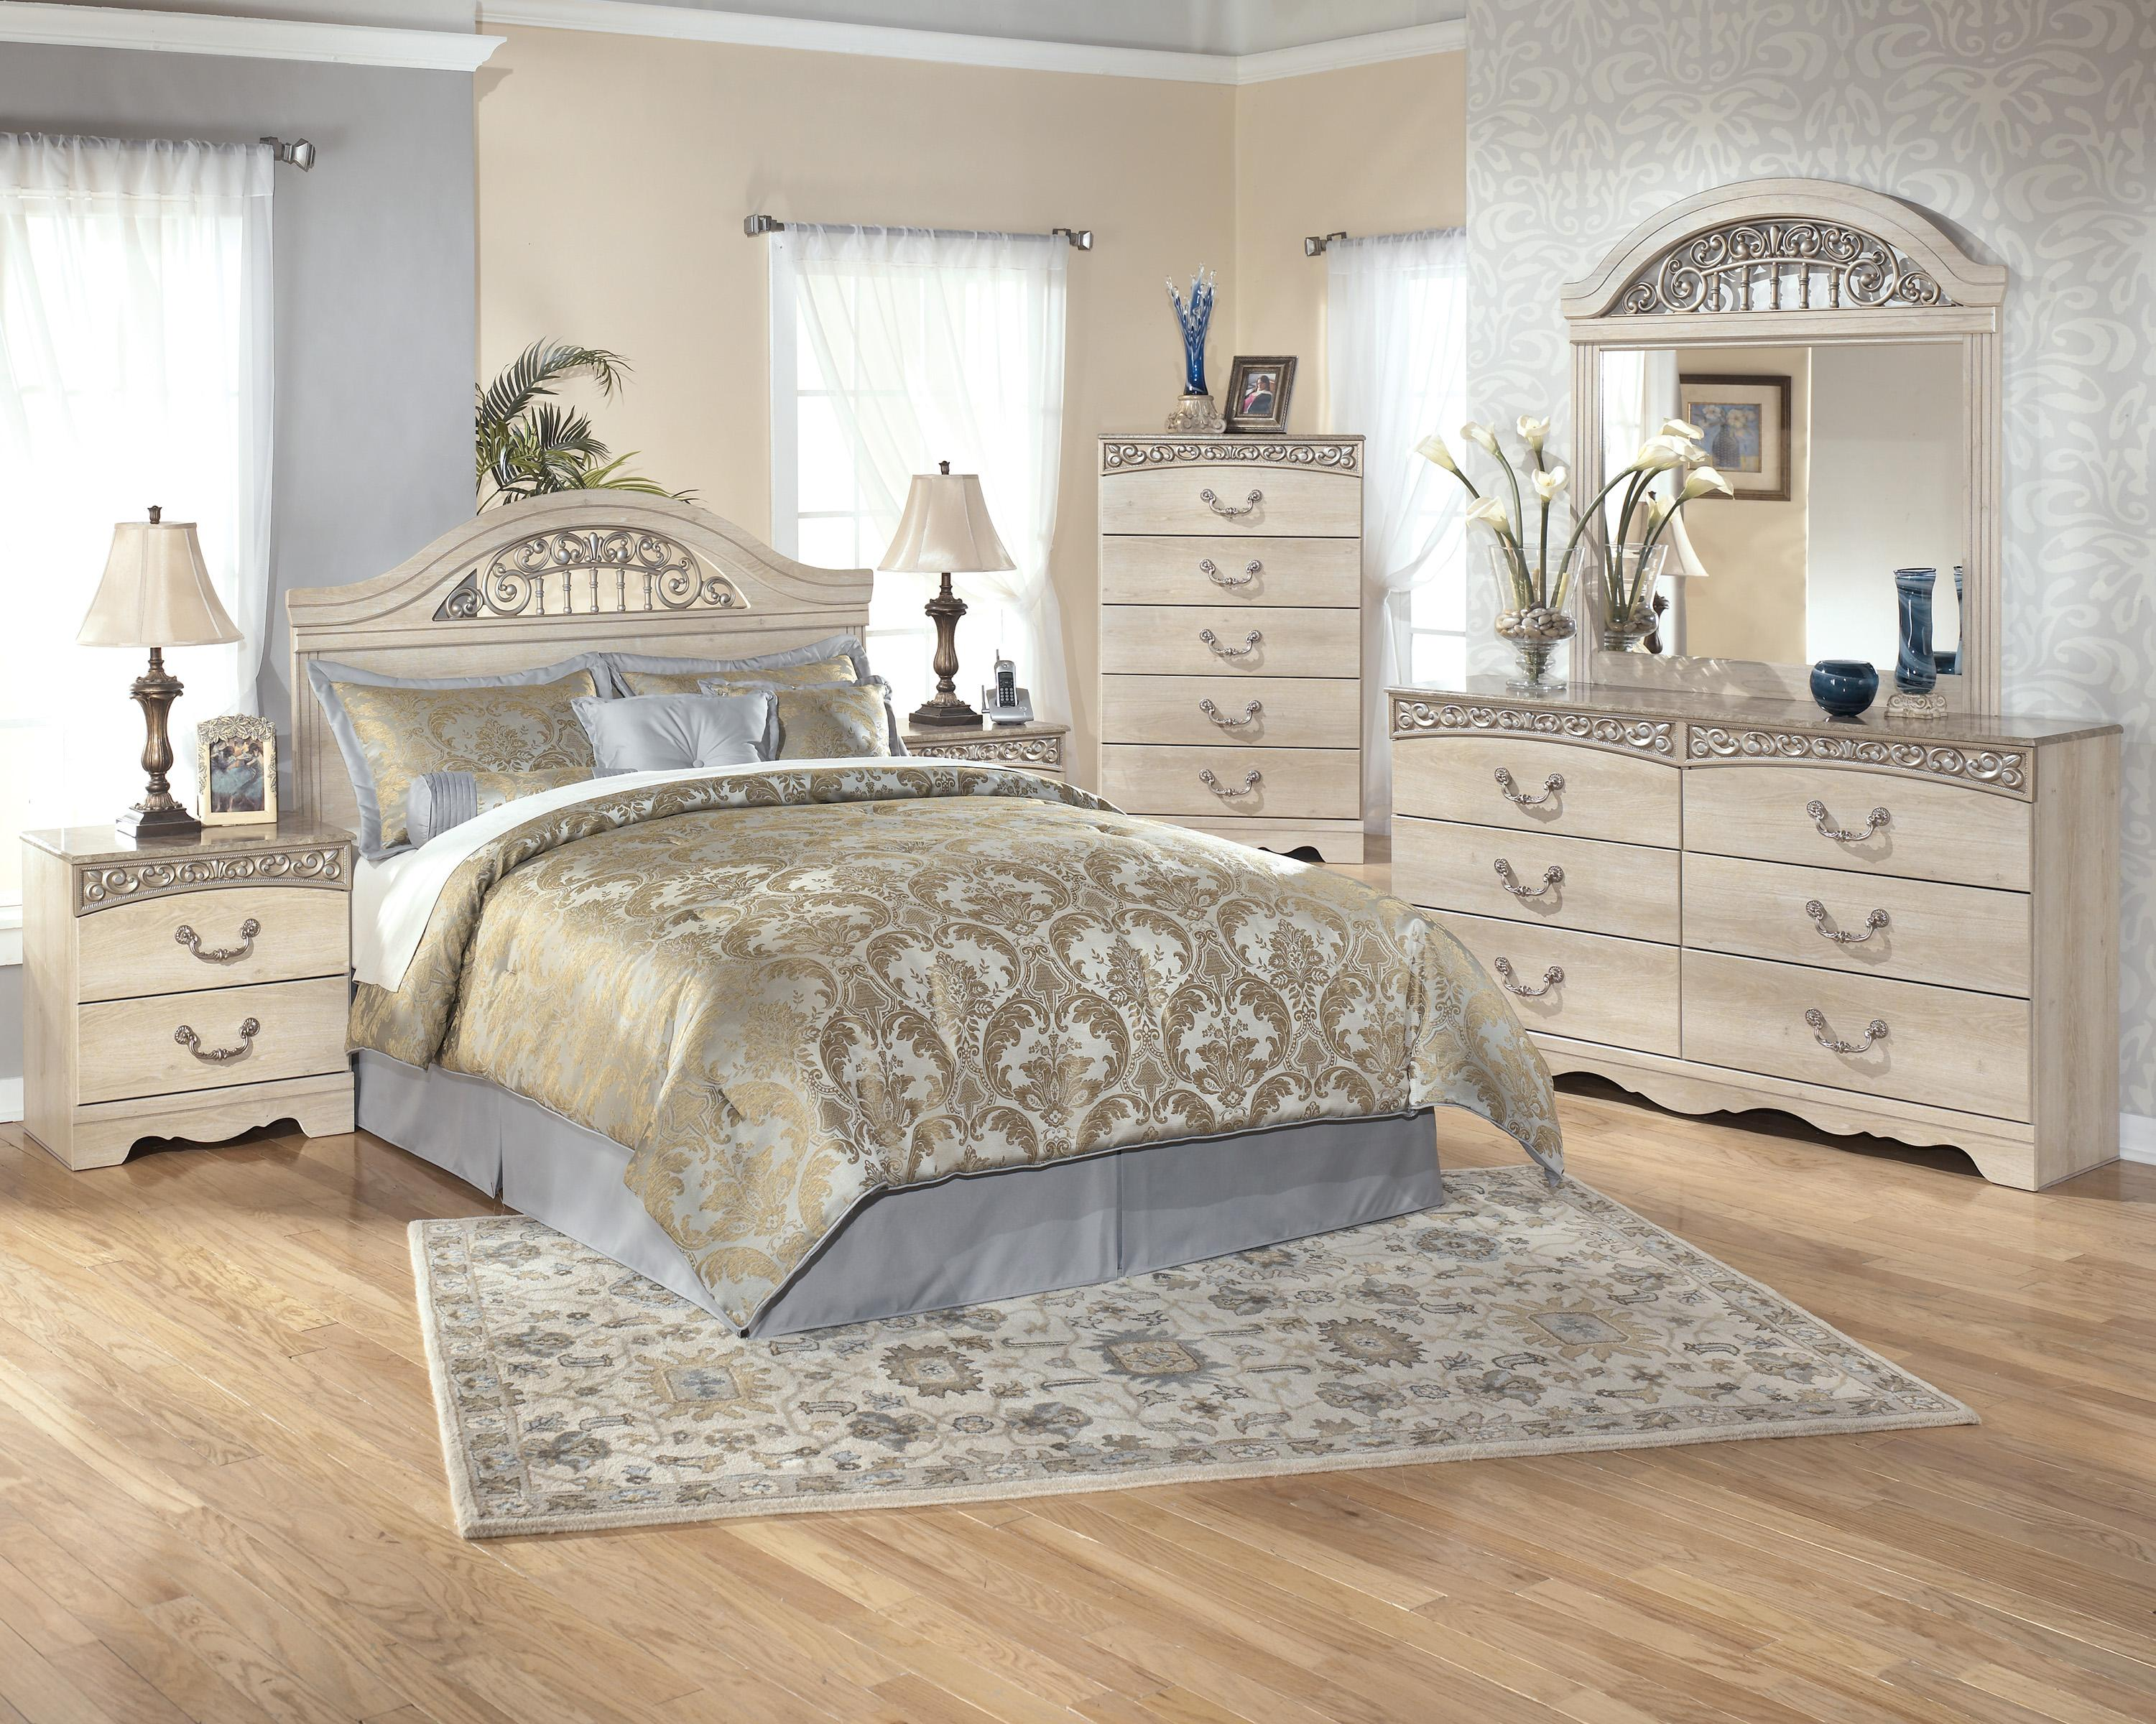 Mesmerizing ashley furniture columbus ga for living room ideas with ashley furniture columbus ohio